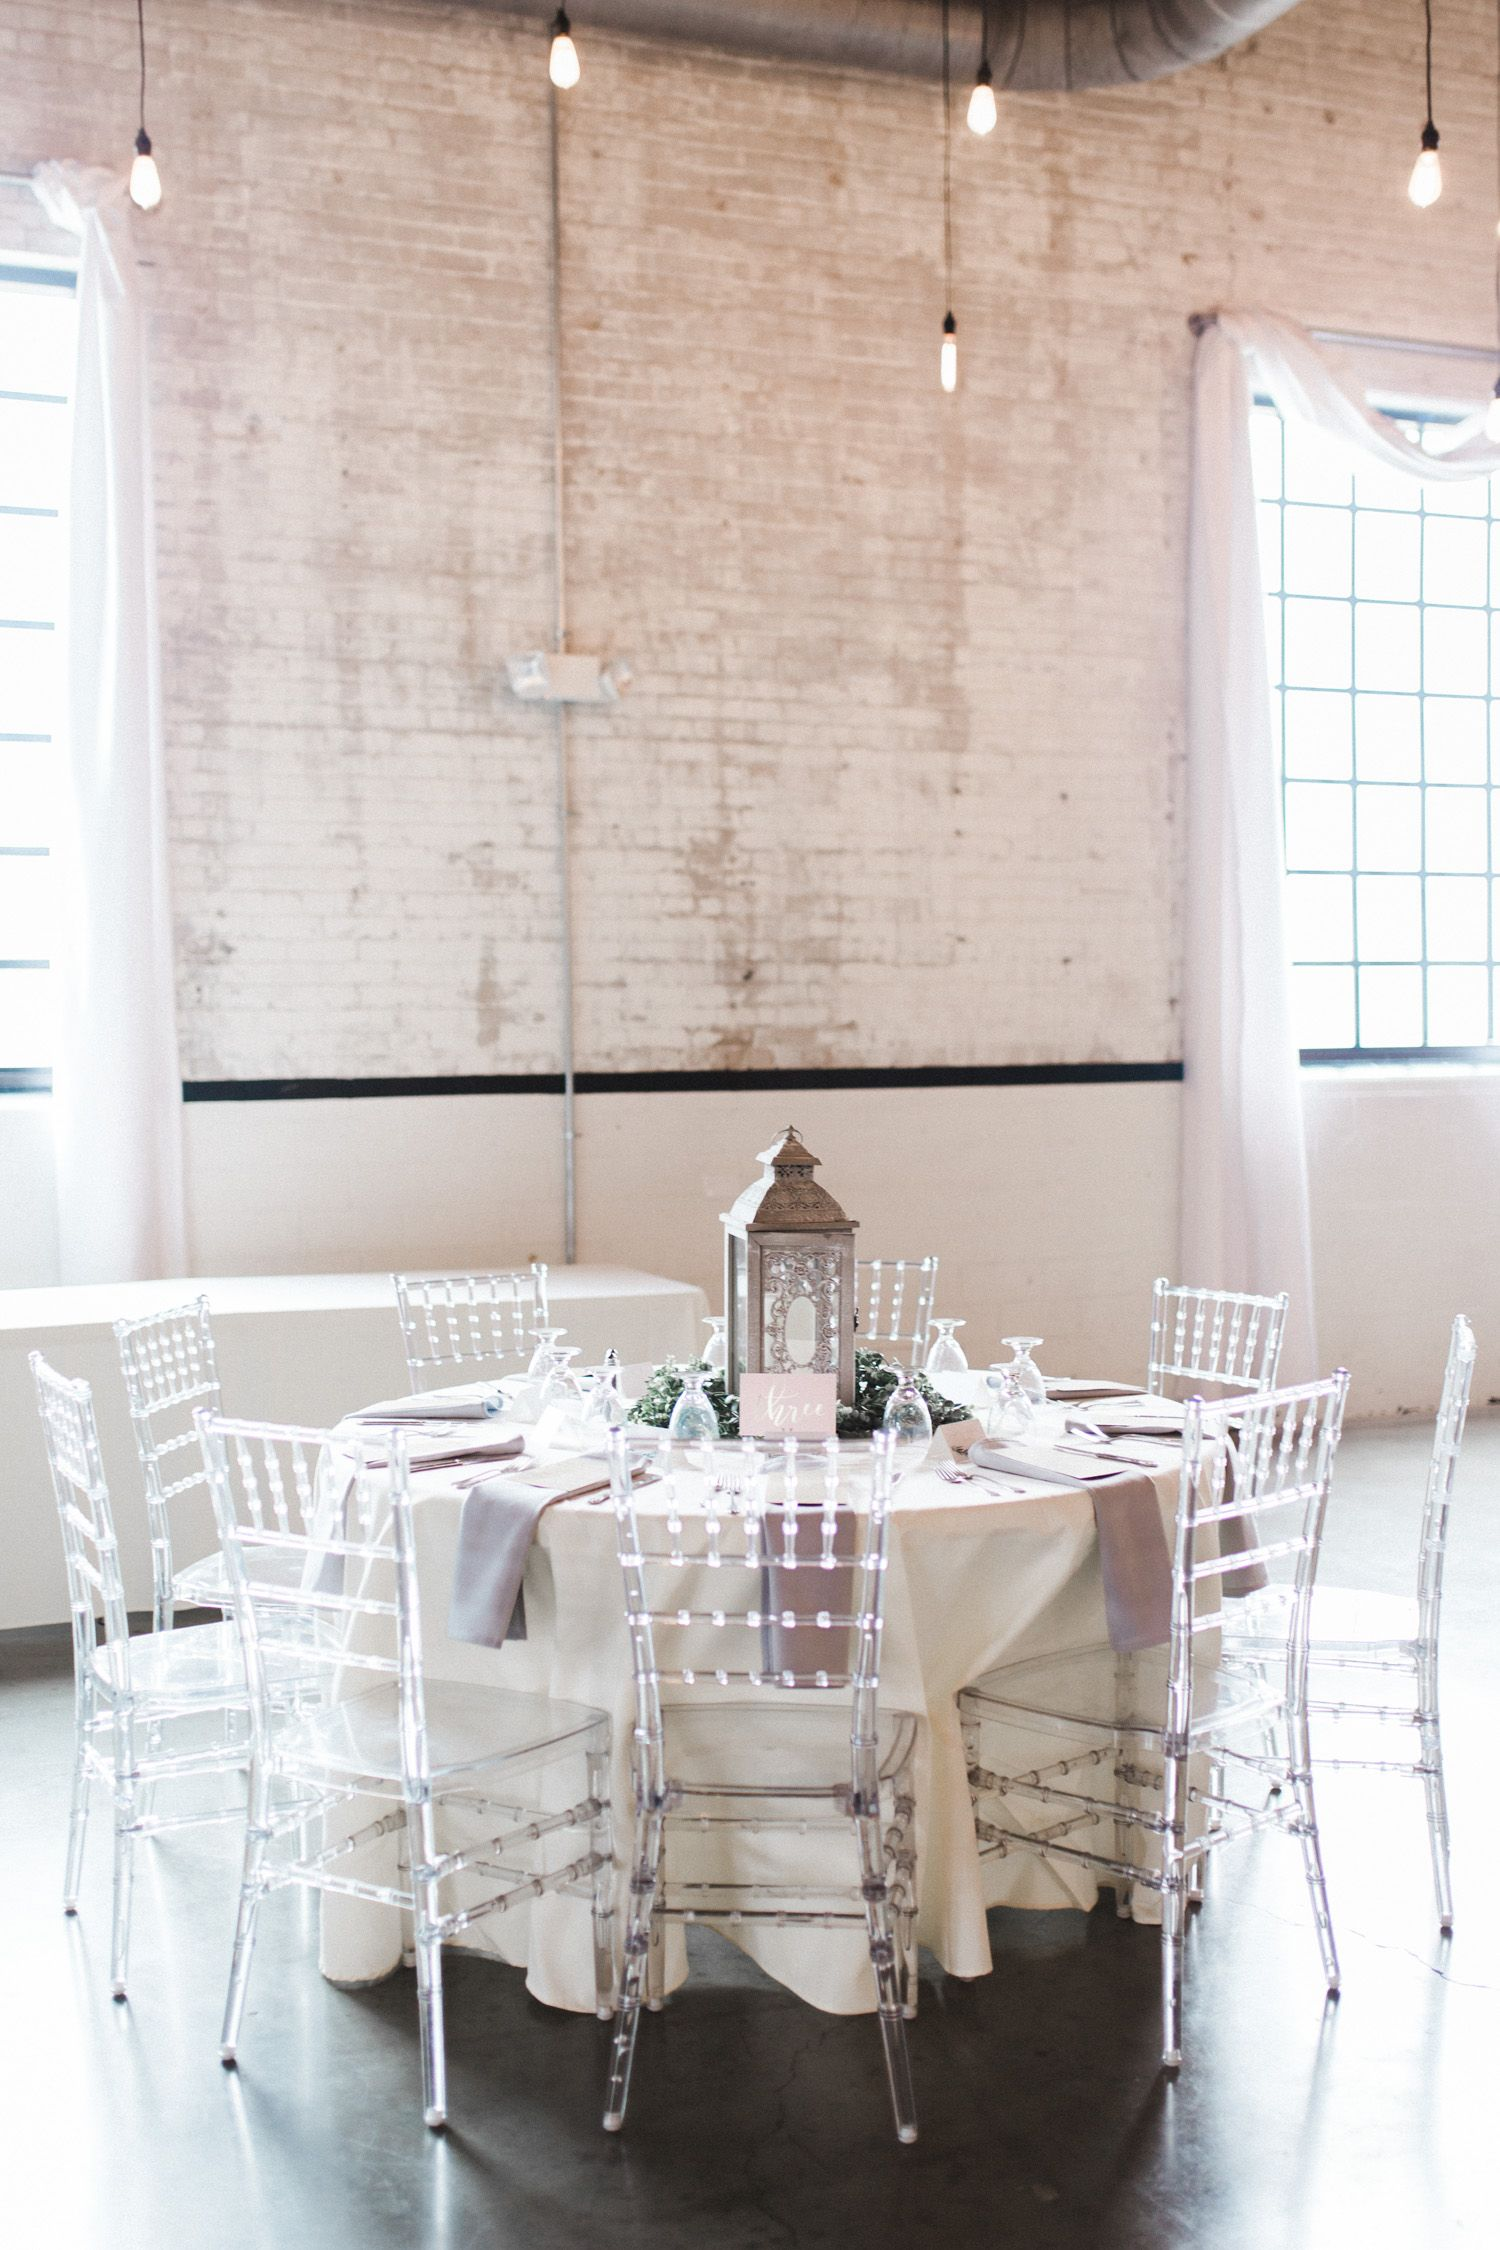 An Industrial Meets Ethereal Wedding at The Brick